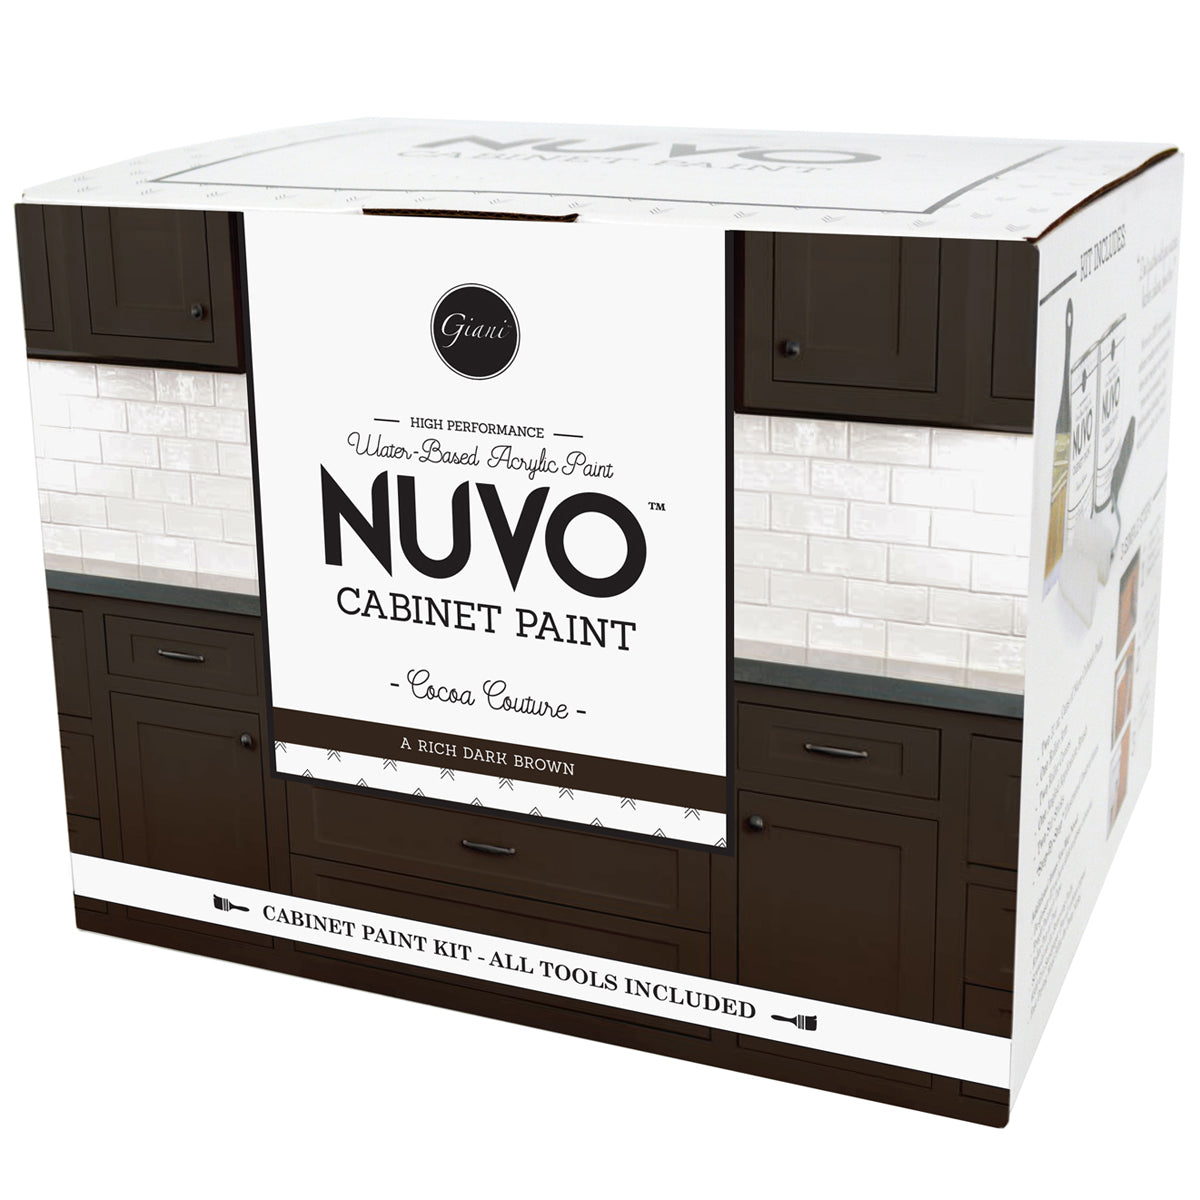 Nuvo Cocoa Couture Cabinet Paint Kit – Giani Inc.